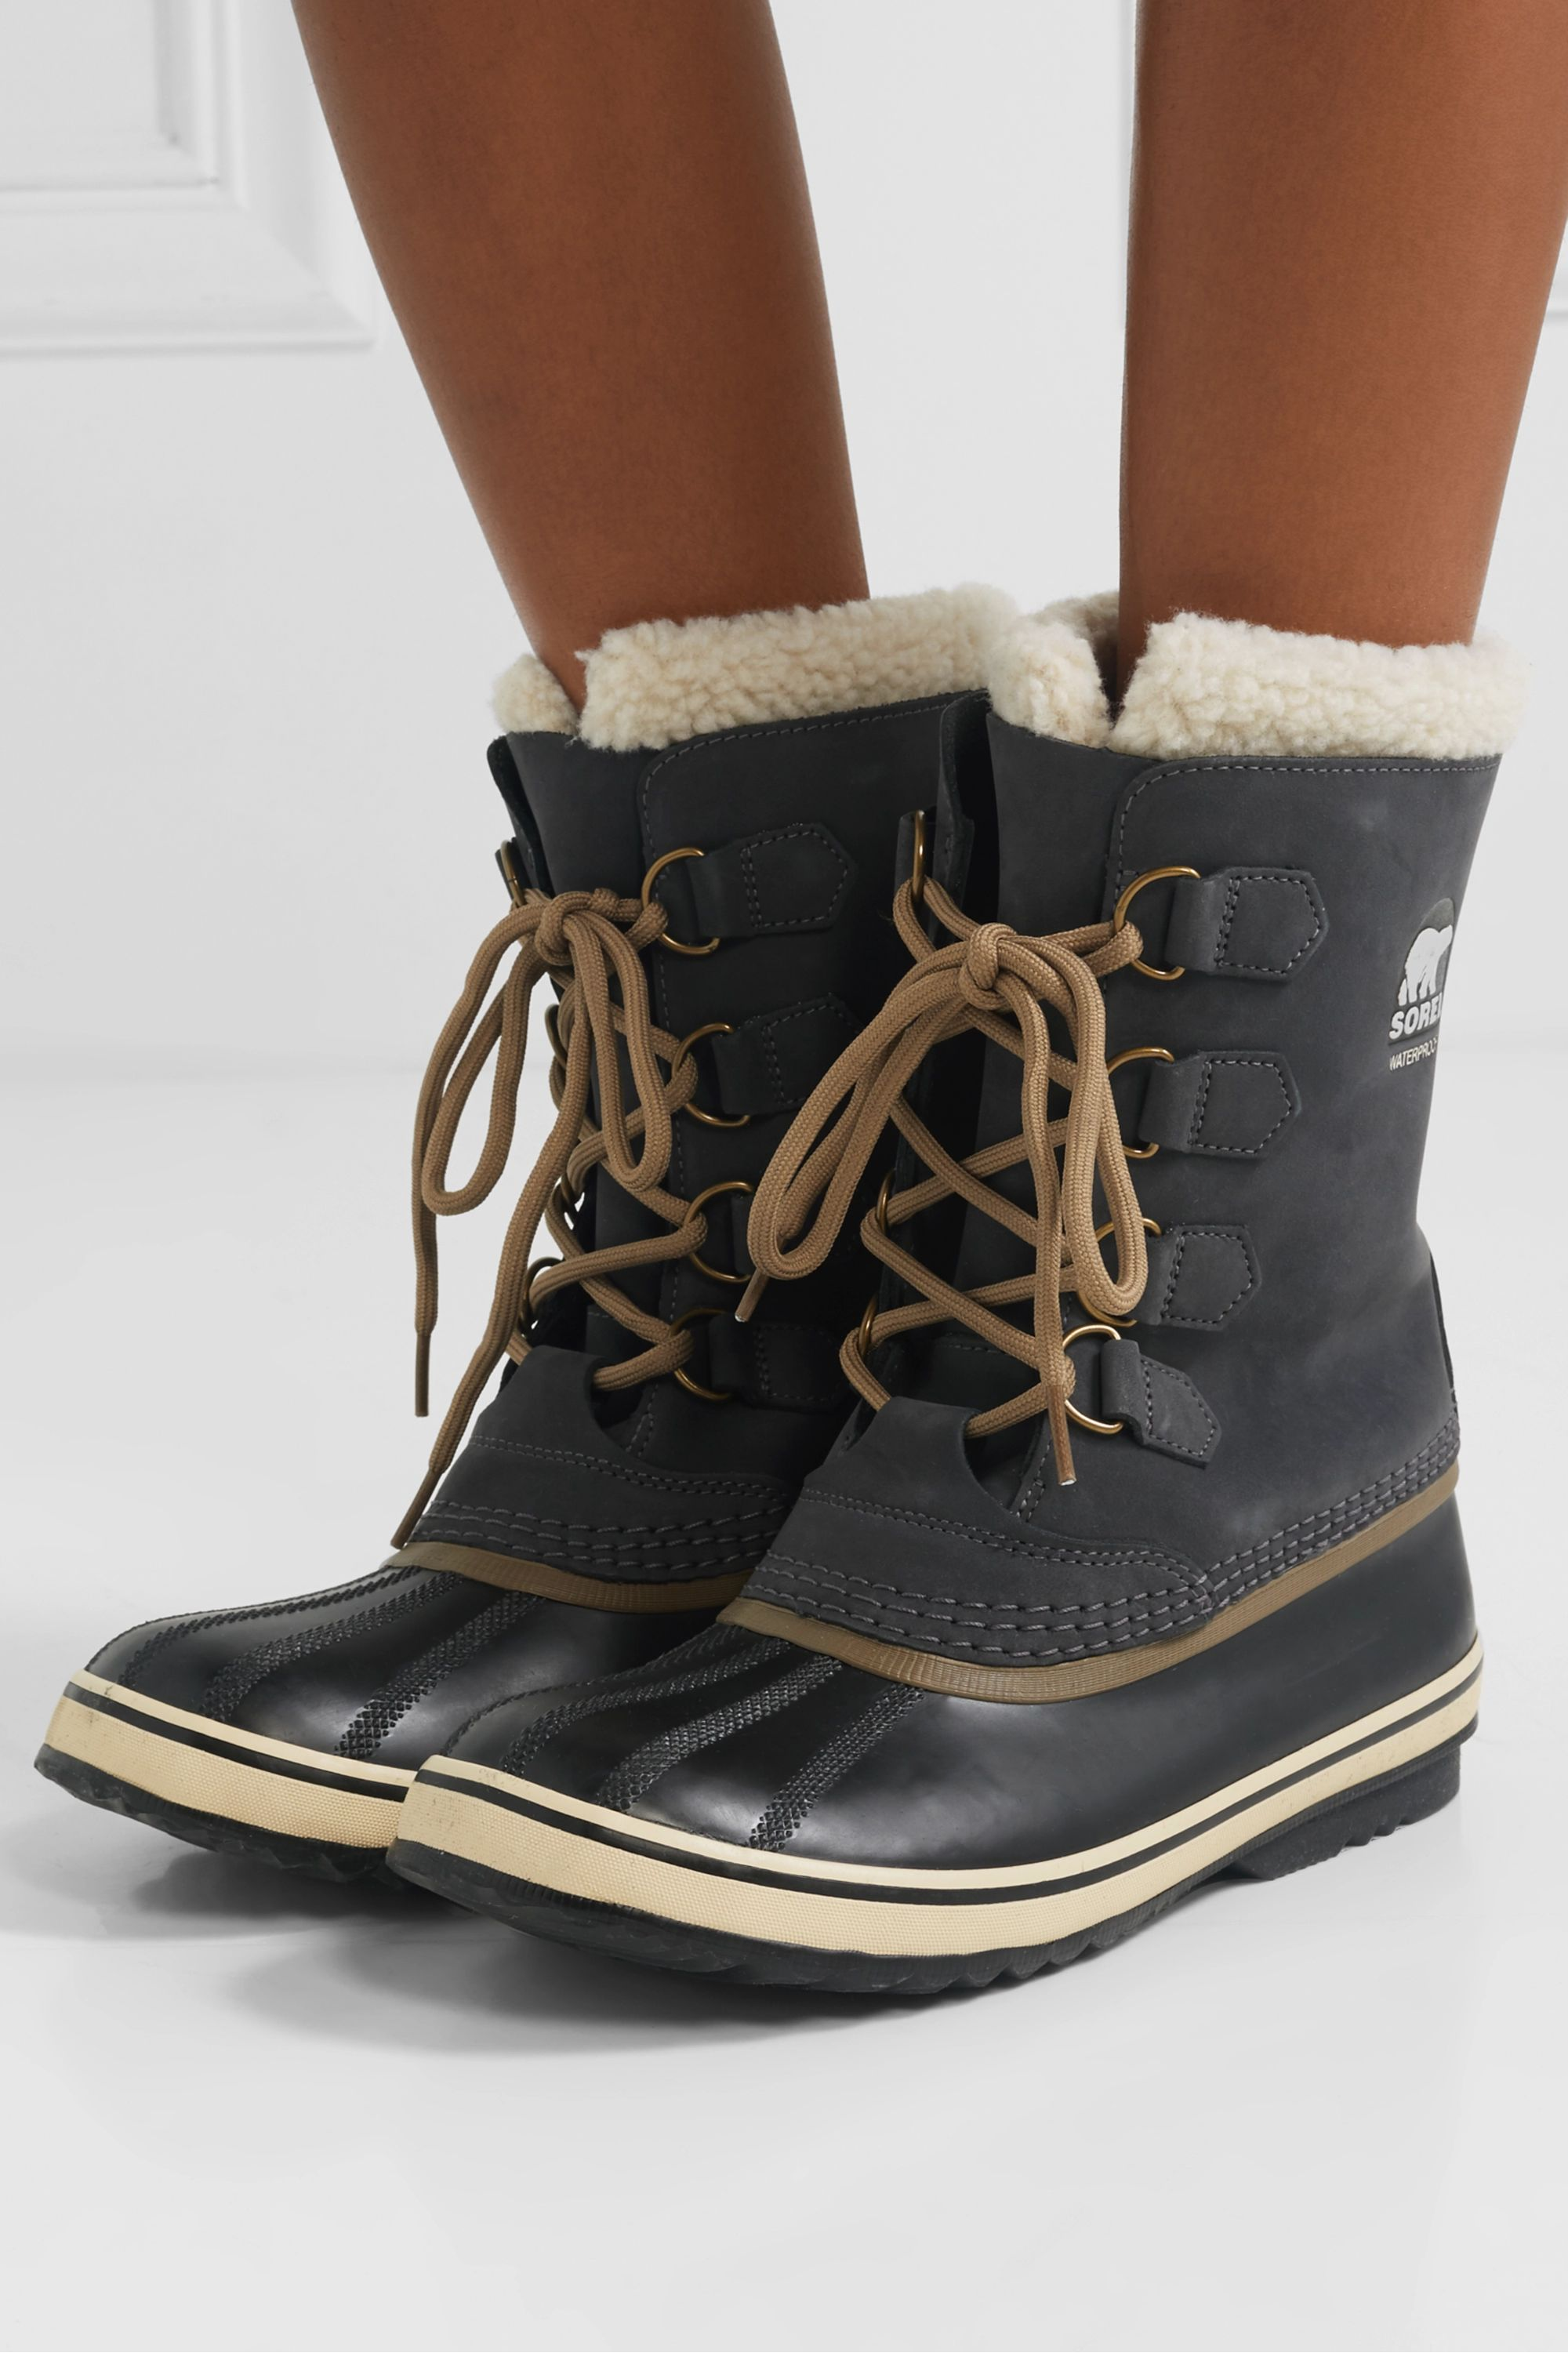 Sorel 1964 PAC 2 fleece-trimmed nubuck and rubber snow boots